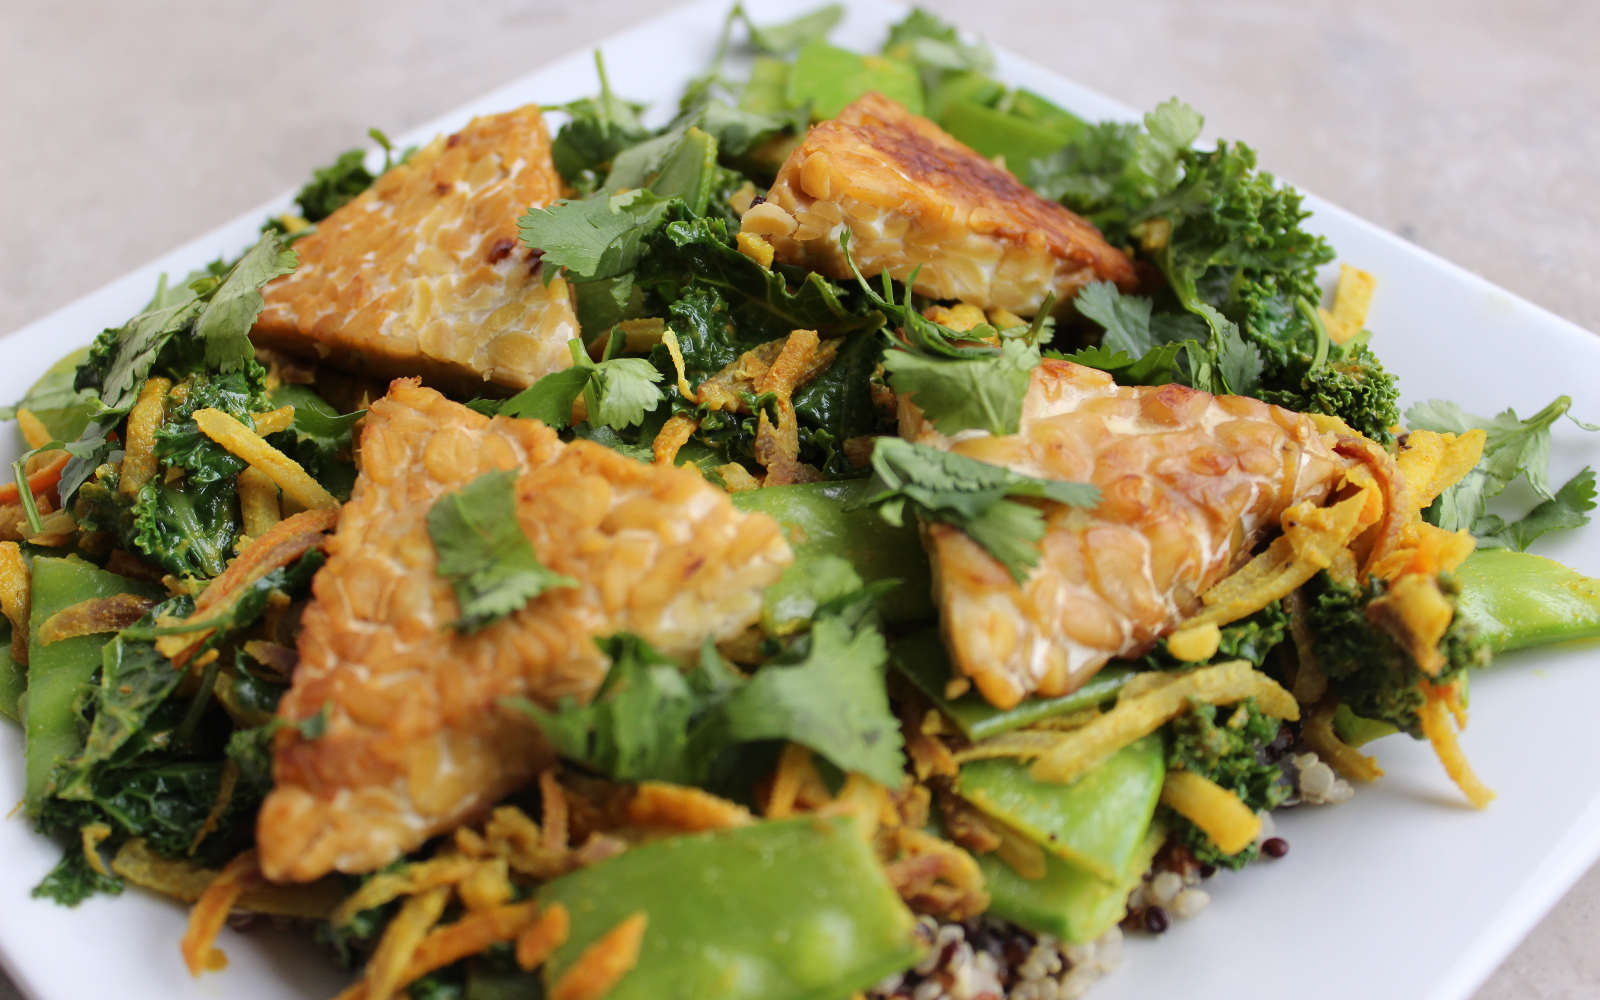 Curried Vegetables With Tempeh Triangles